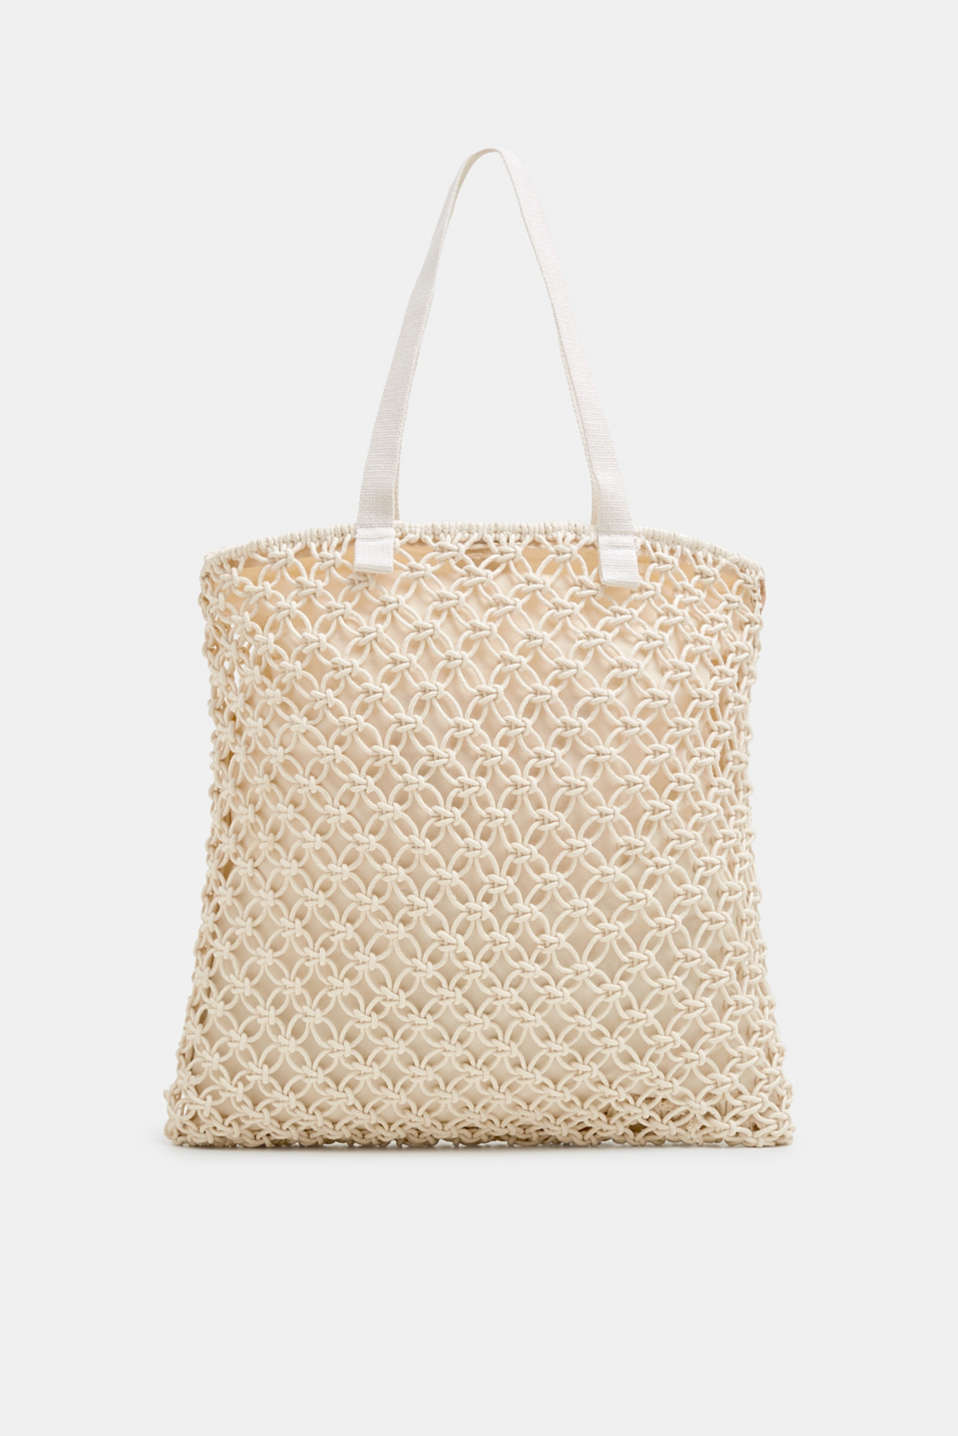 Esprit - Crocheted shopper made of 100% cotton